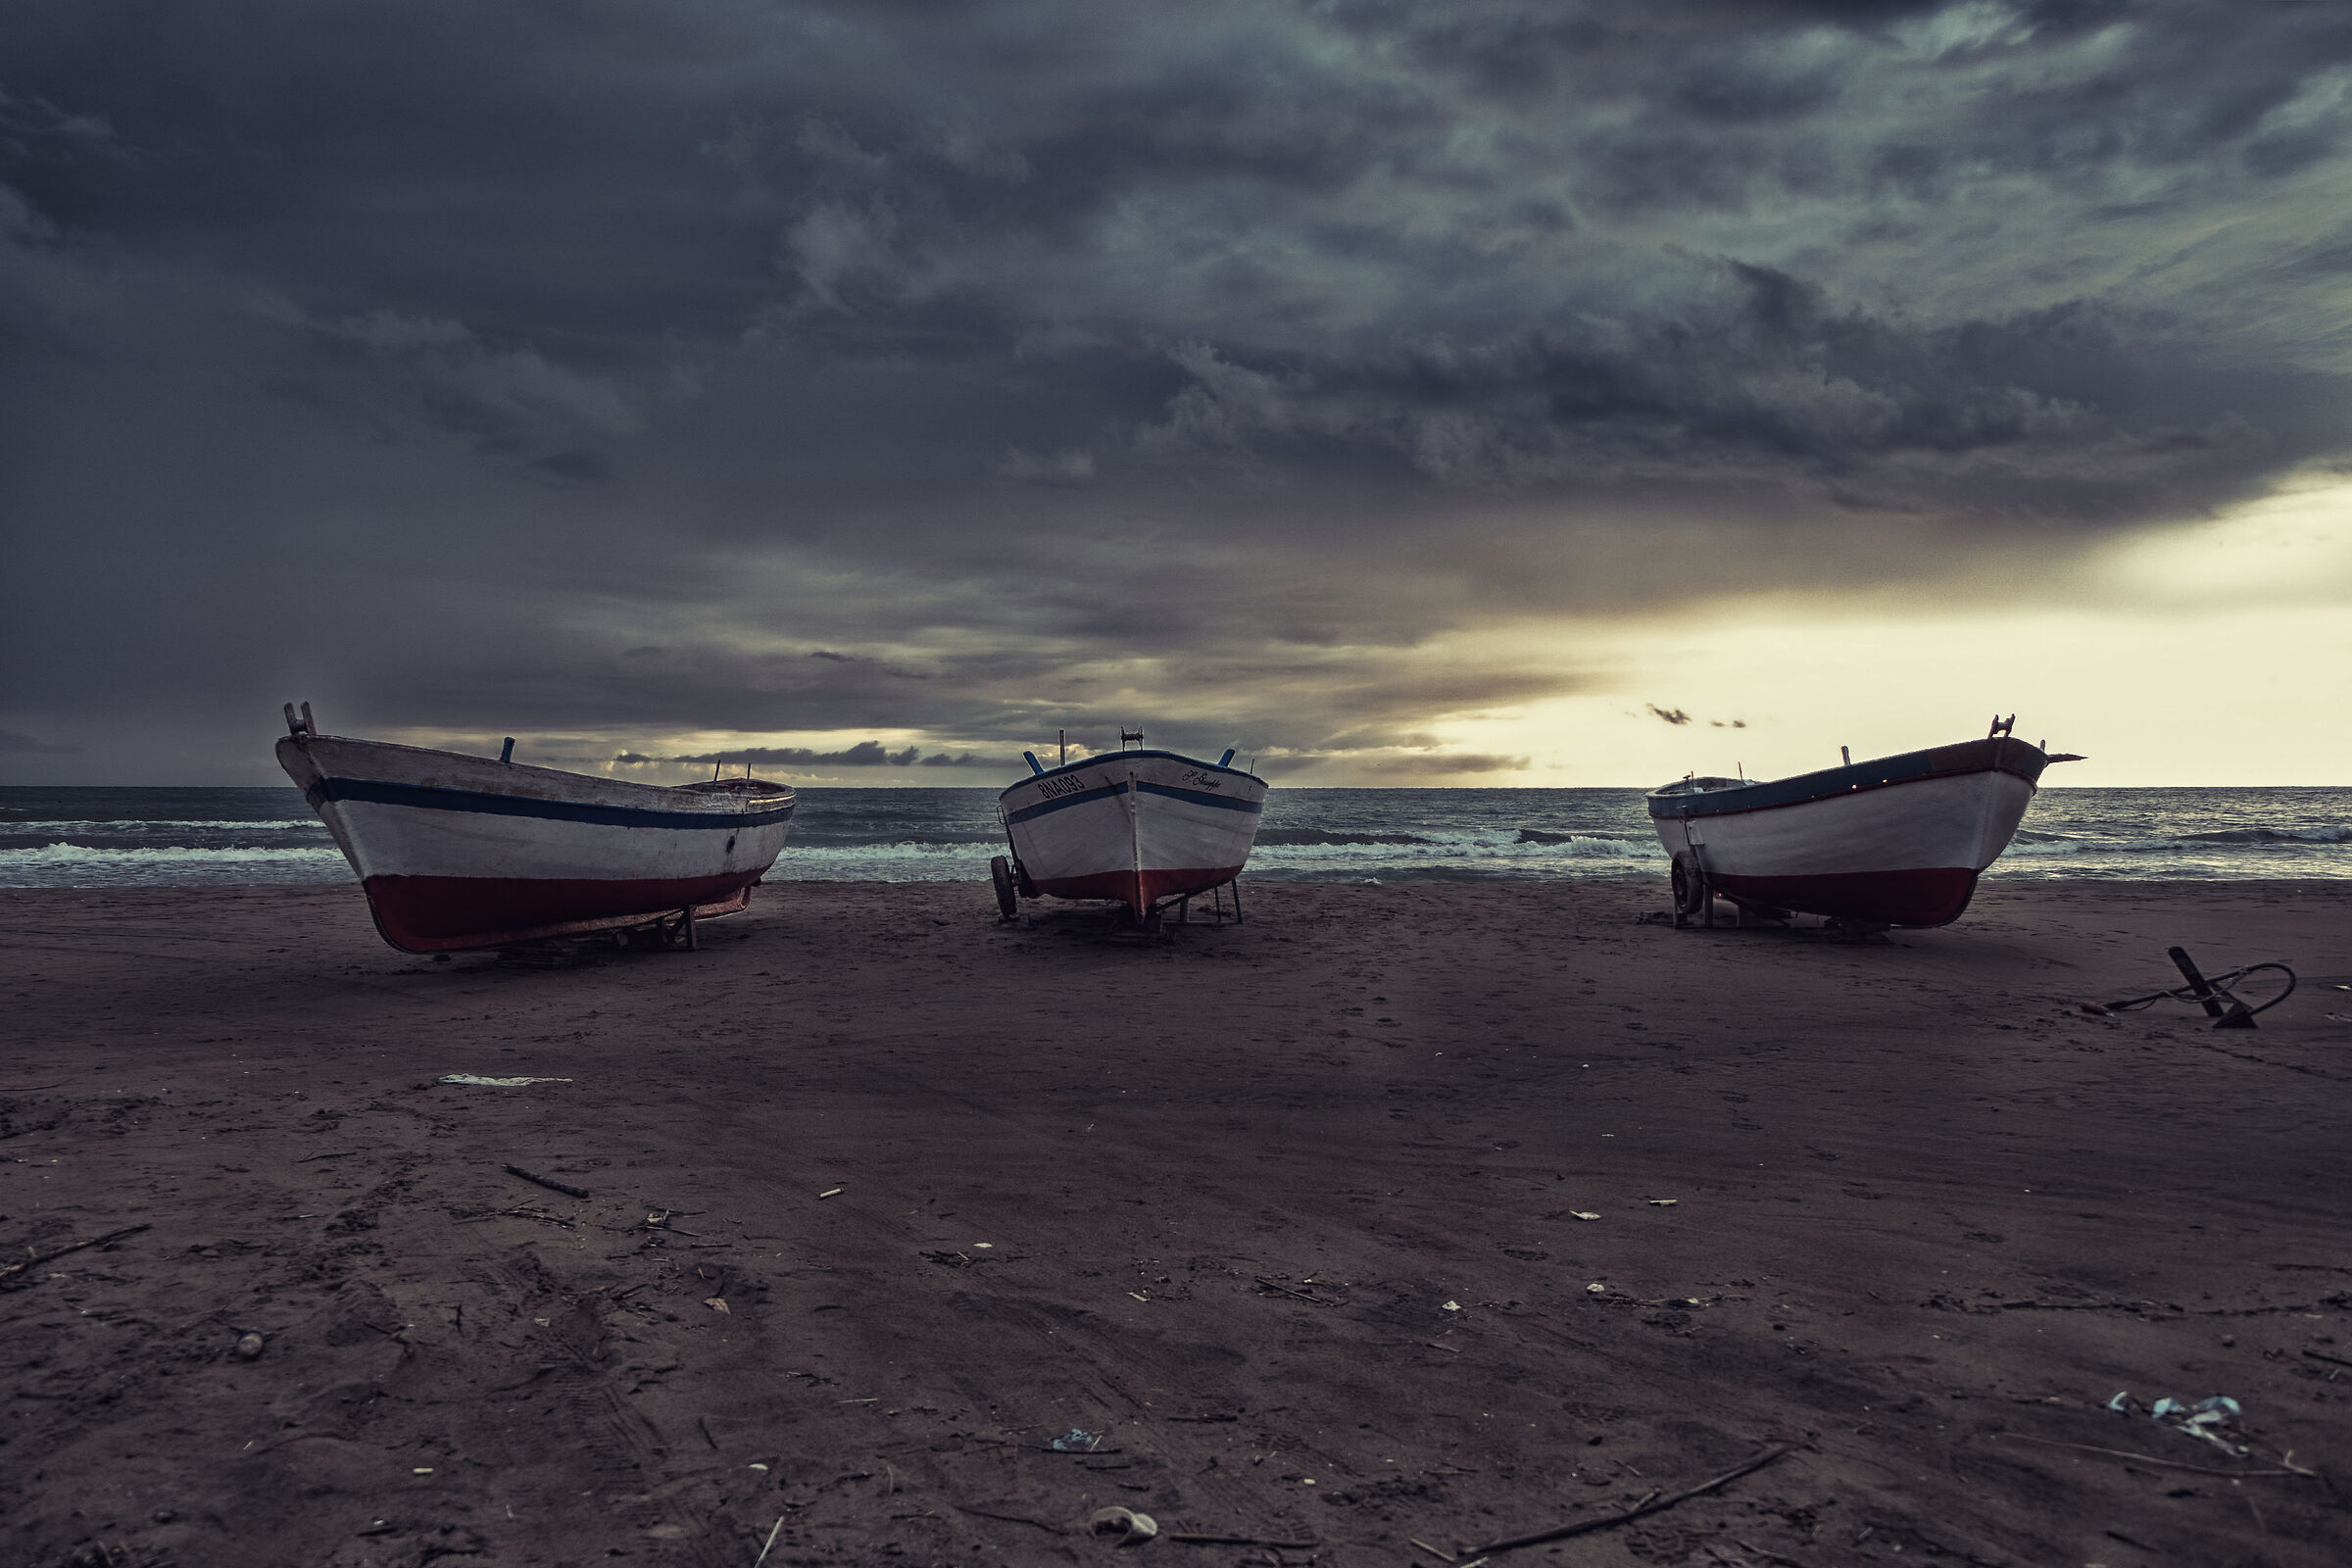 The Dry Boats...